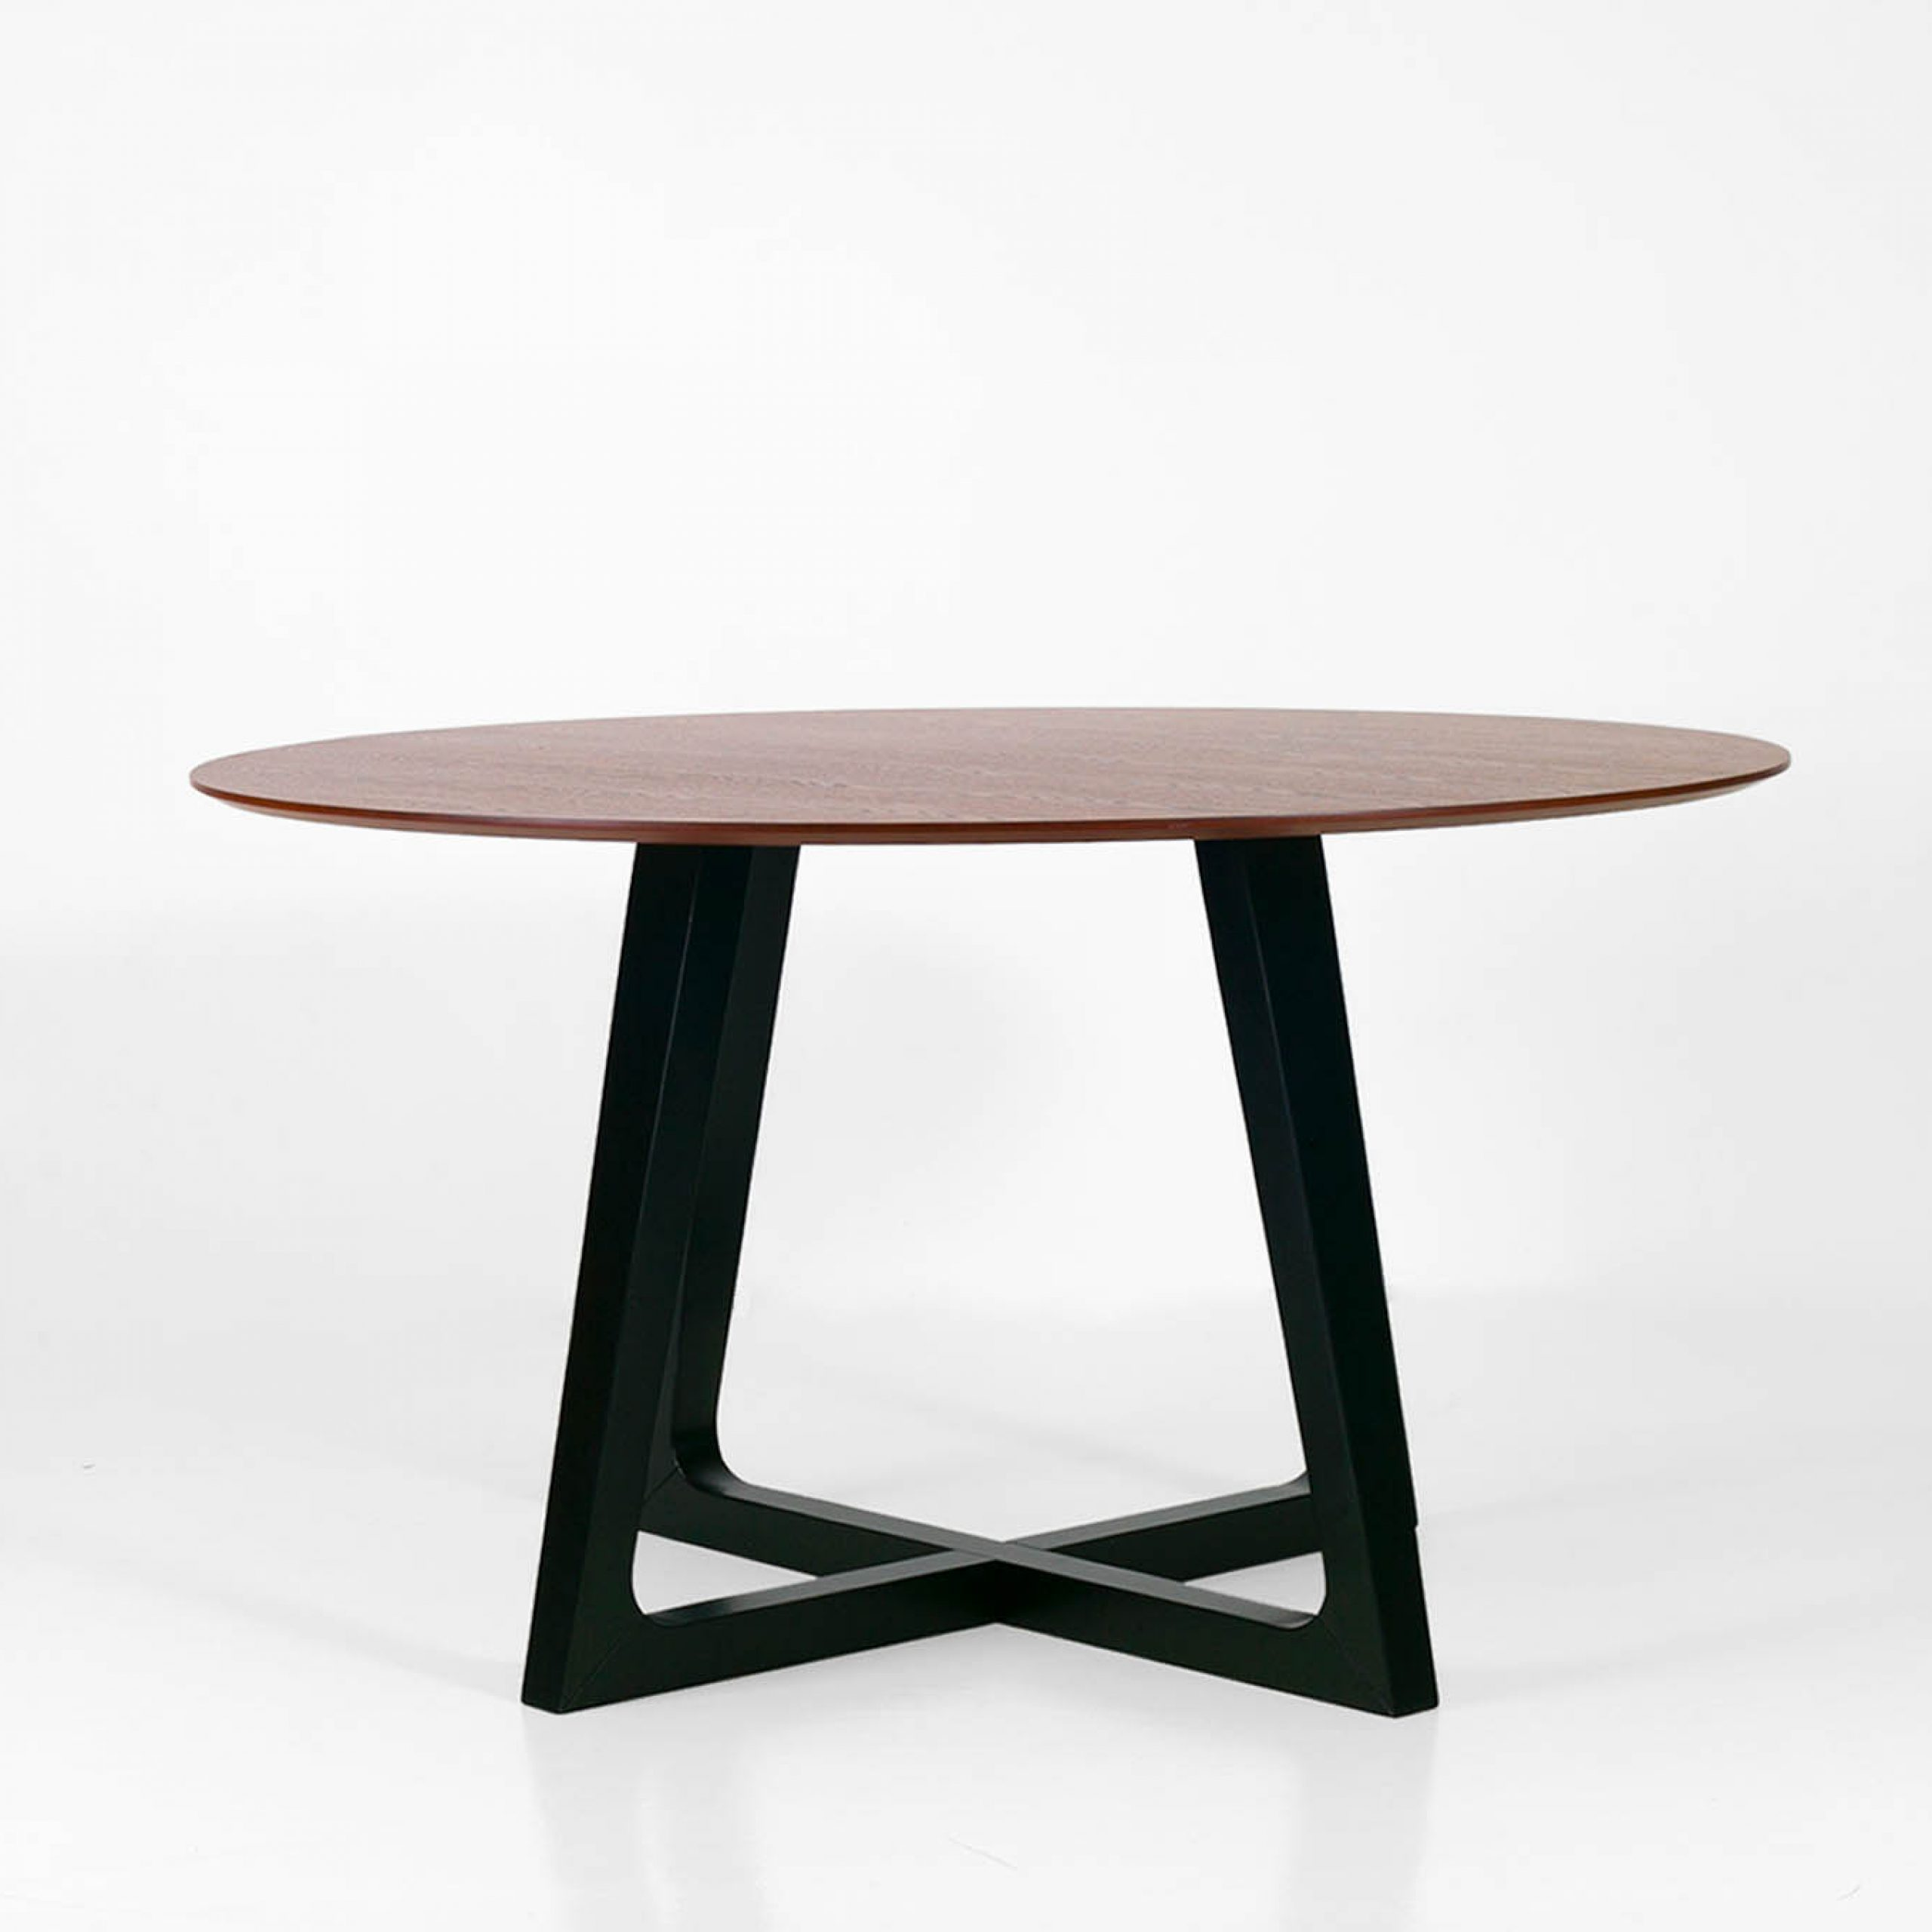 Shop For Blanda Round Dining Table Online! Regarding Most Current Rae Round Pedestal Dining Tables (Image 22 of 25)